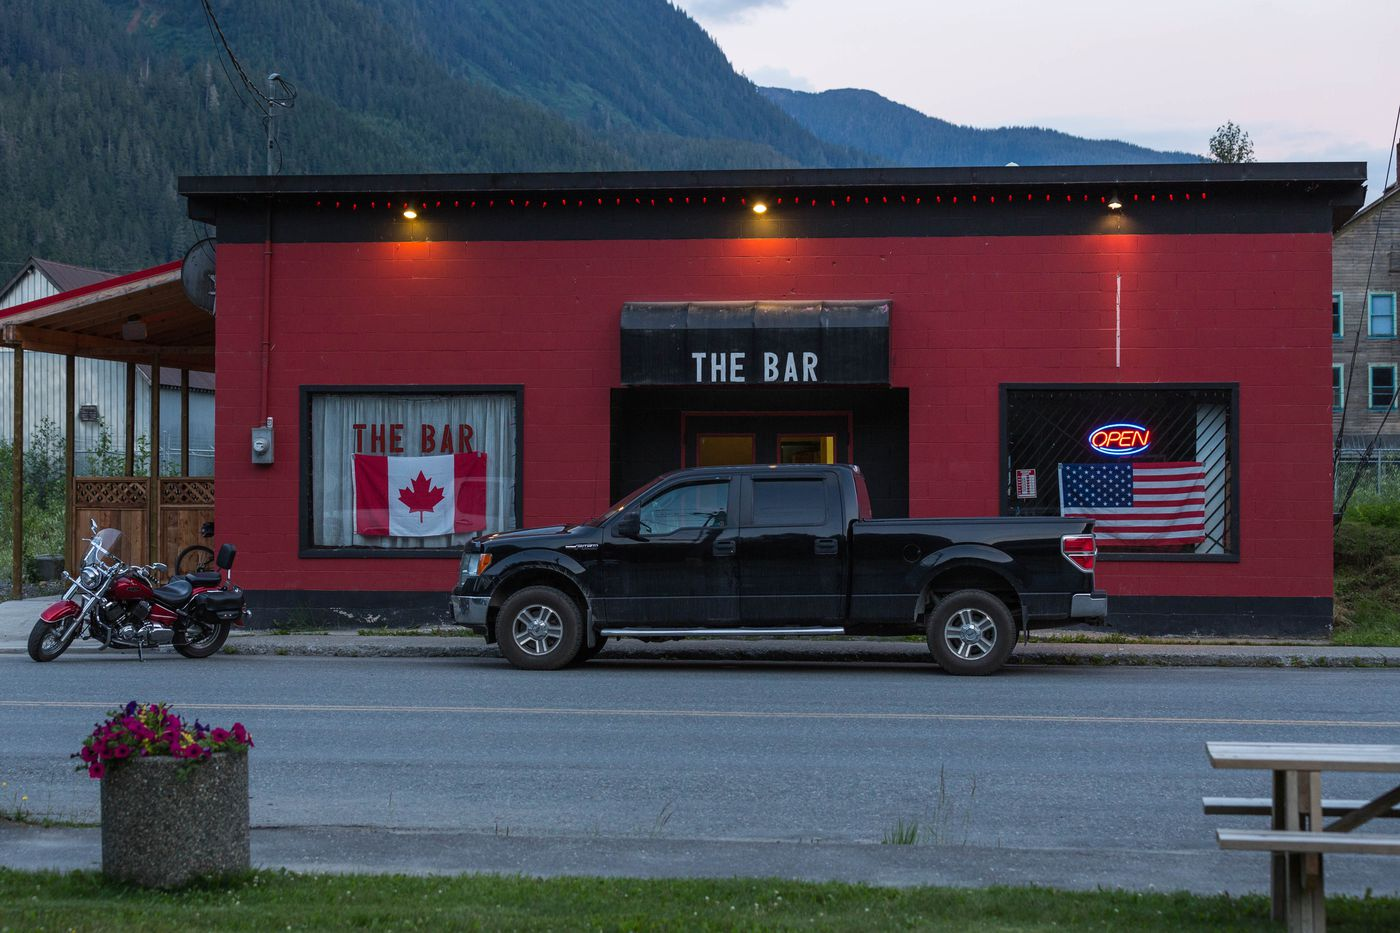 The Bar in Stewart, British Columbia displays both the Canadian and American flag on June 30, 2015. Stewart and Hyder, less than two miles apart, both benefit from shared tourism and mining economies, despite the barriers to trade across the international border.